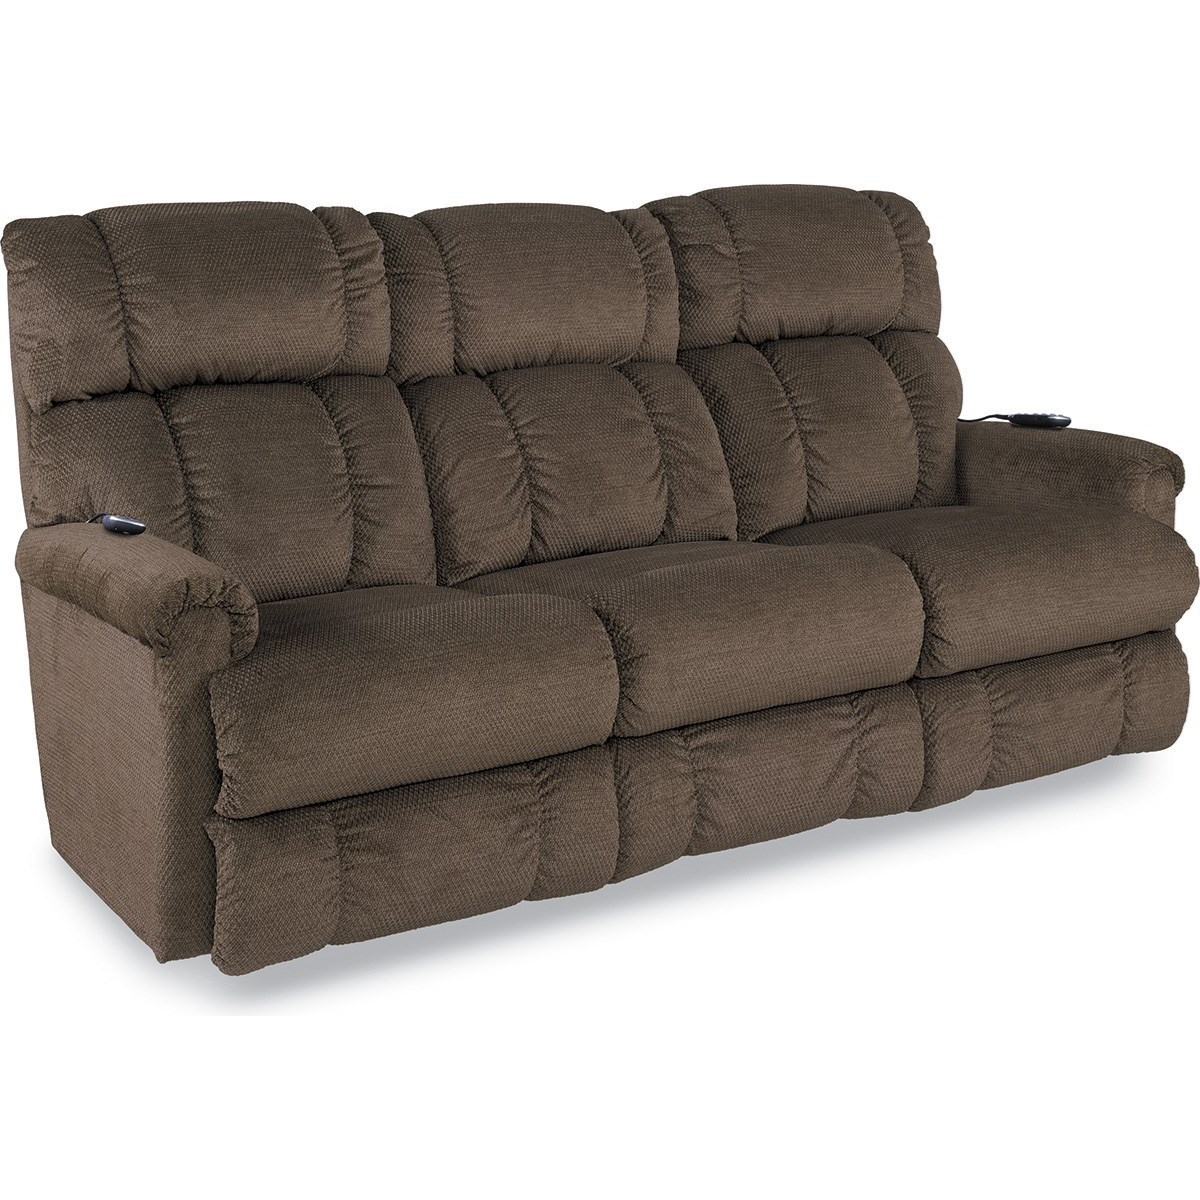 Leather Sofa La Z Boy Pinnacle Powerreclinexrw Wall Saver Reclining Sofa W Power Headrest Lumbar By La Z Boy At Novello Home Furnishings